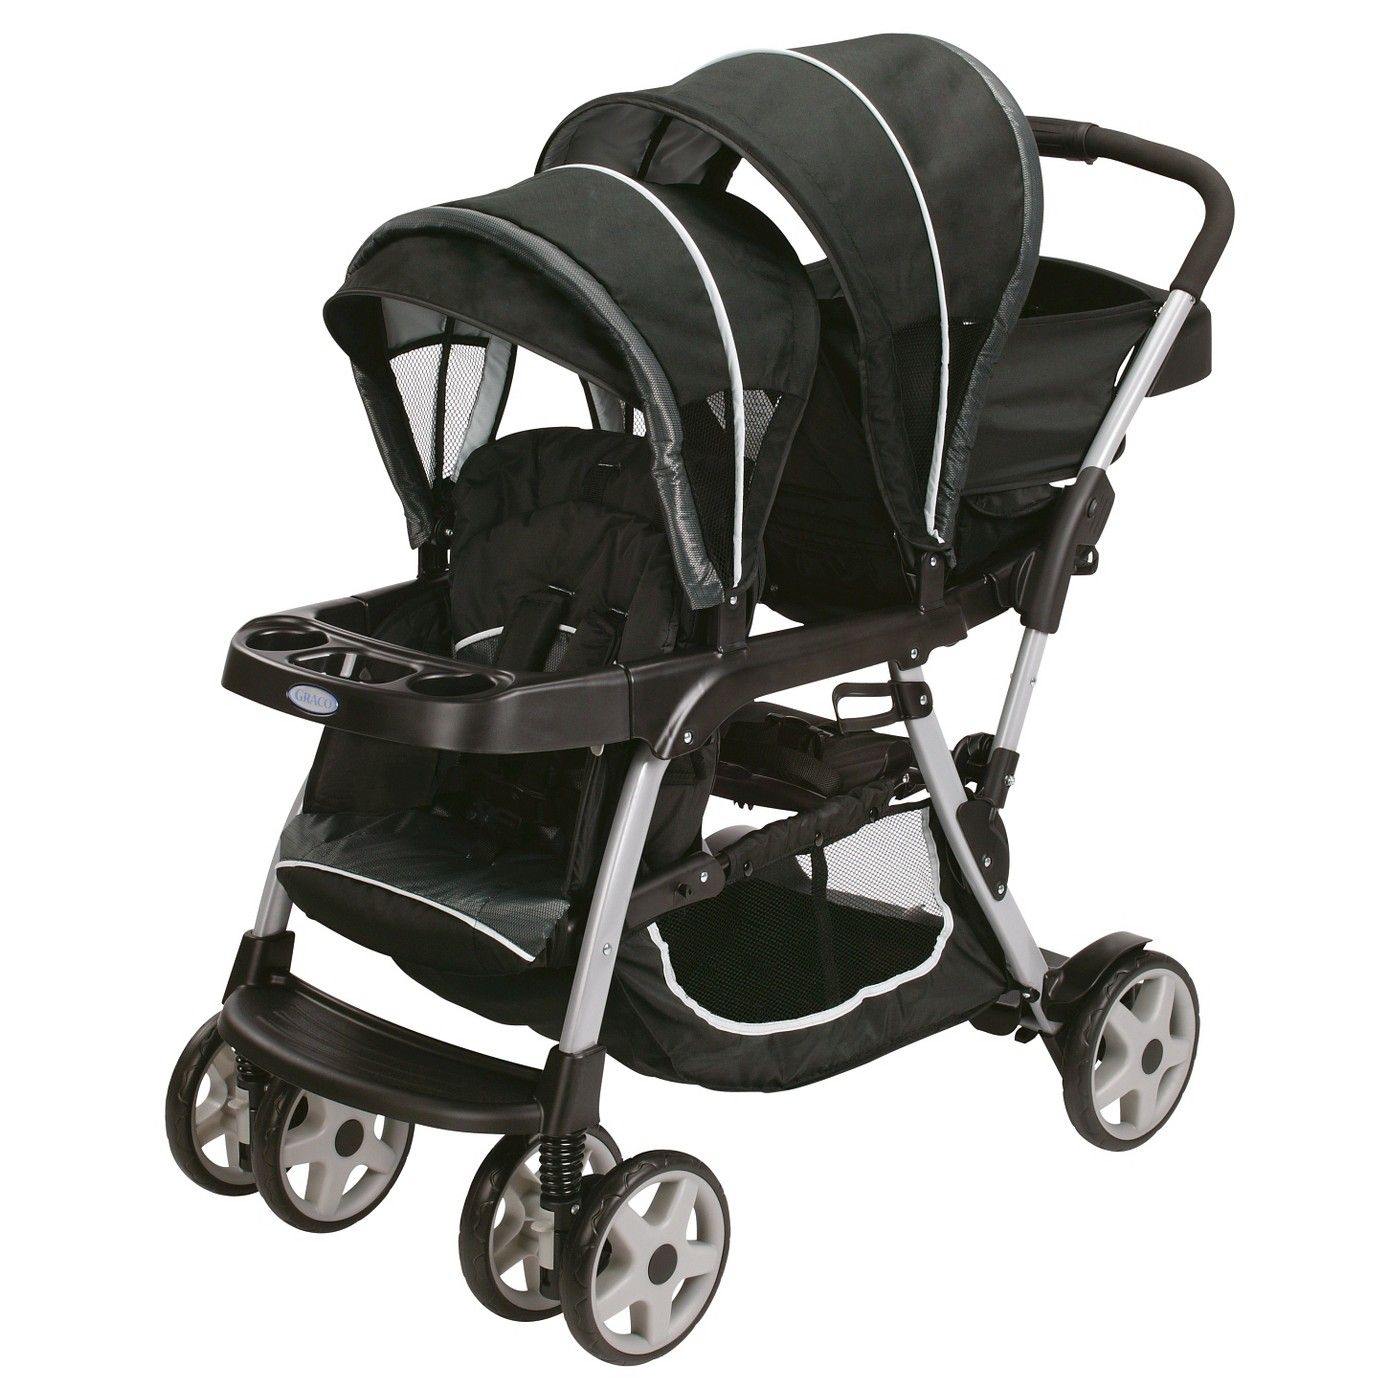 Graco Ready2Grow LX Double Stroller Coches para bebes